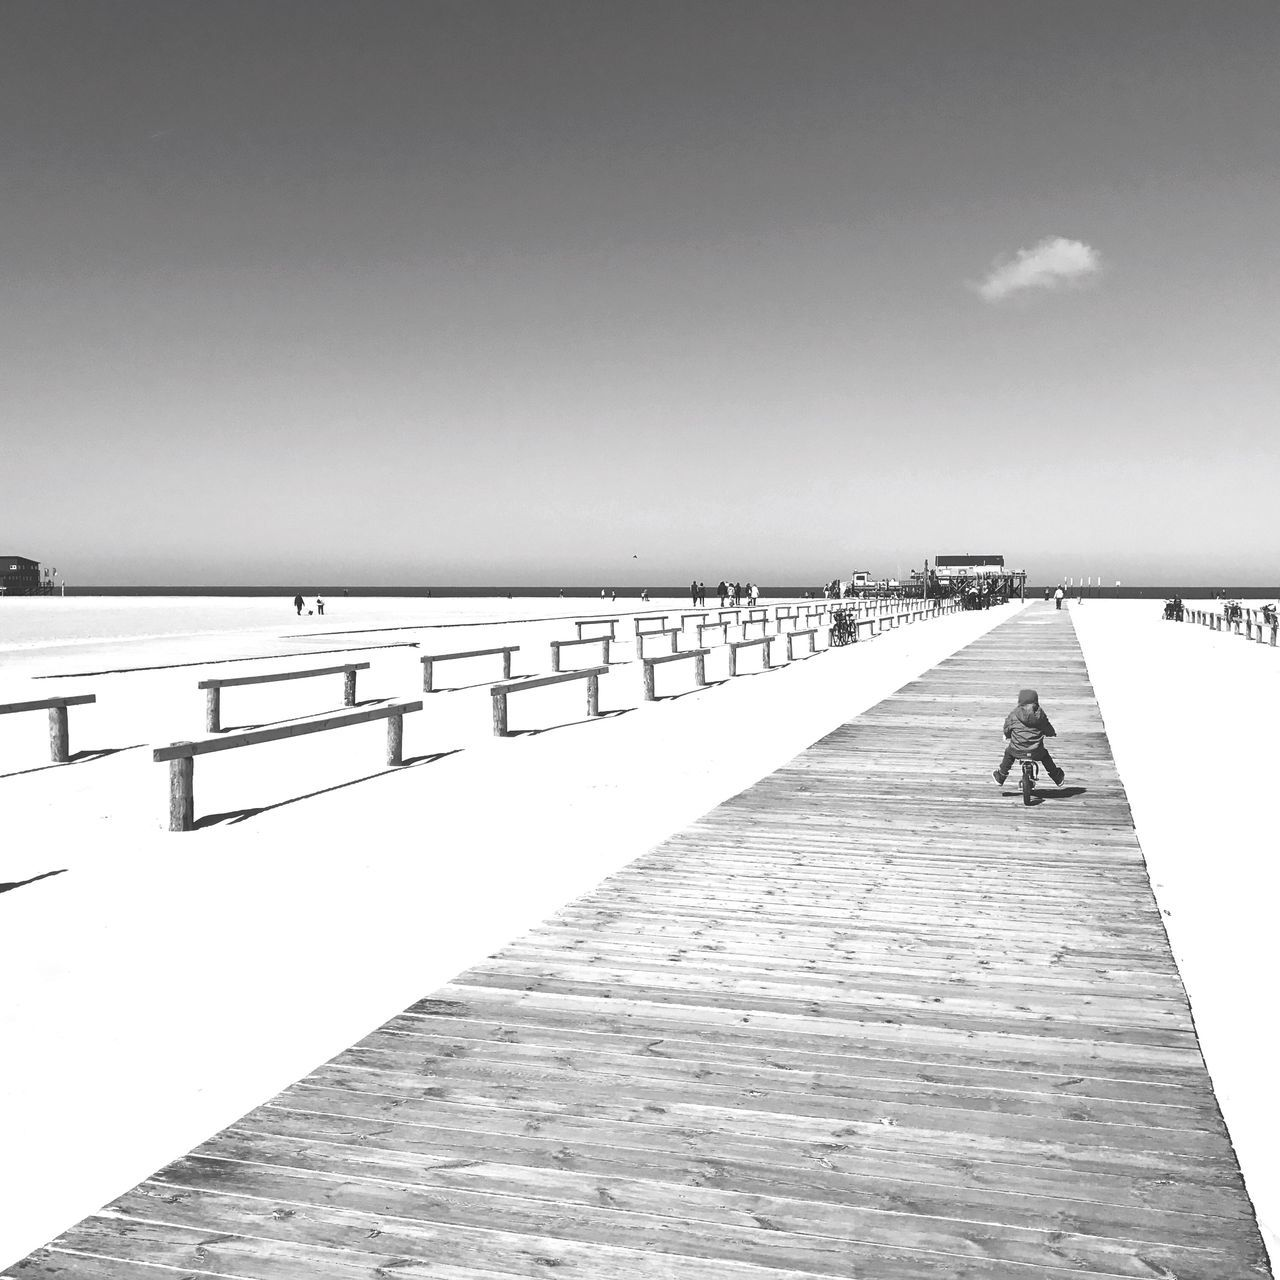 copy space, clear sky, pier, outdoors, full length, walking, sea, day, sunlight, nature, tranquility, beach, sky, real people, one person, beauty in nature, women, men, wood paneling, water, horizon over water, people